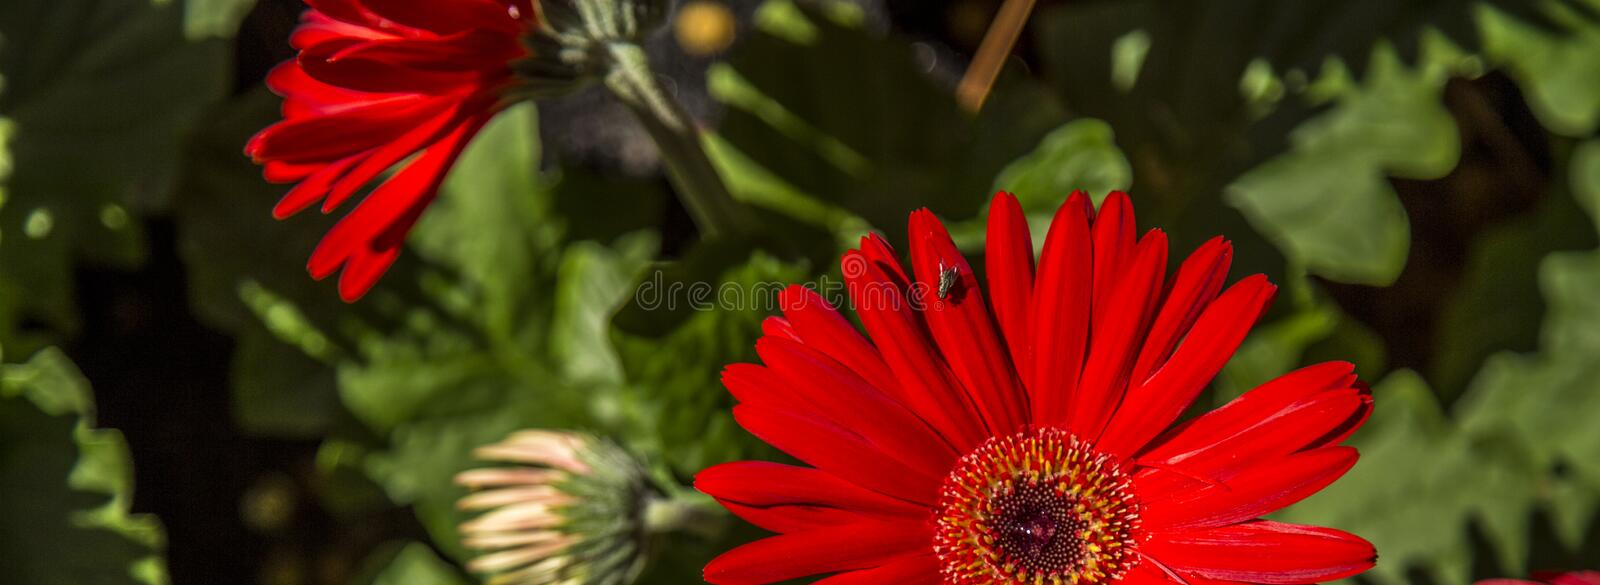 Gerbera flower plant color. Cultive royalty free stock image